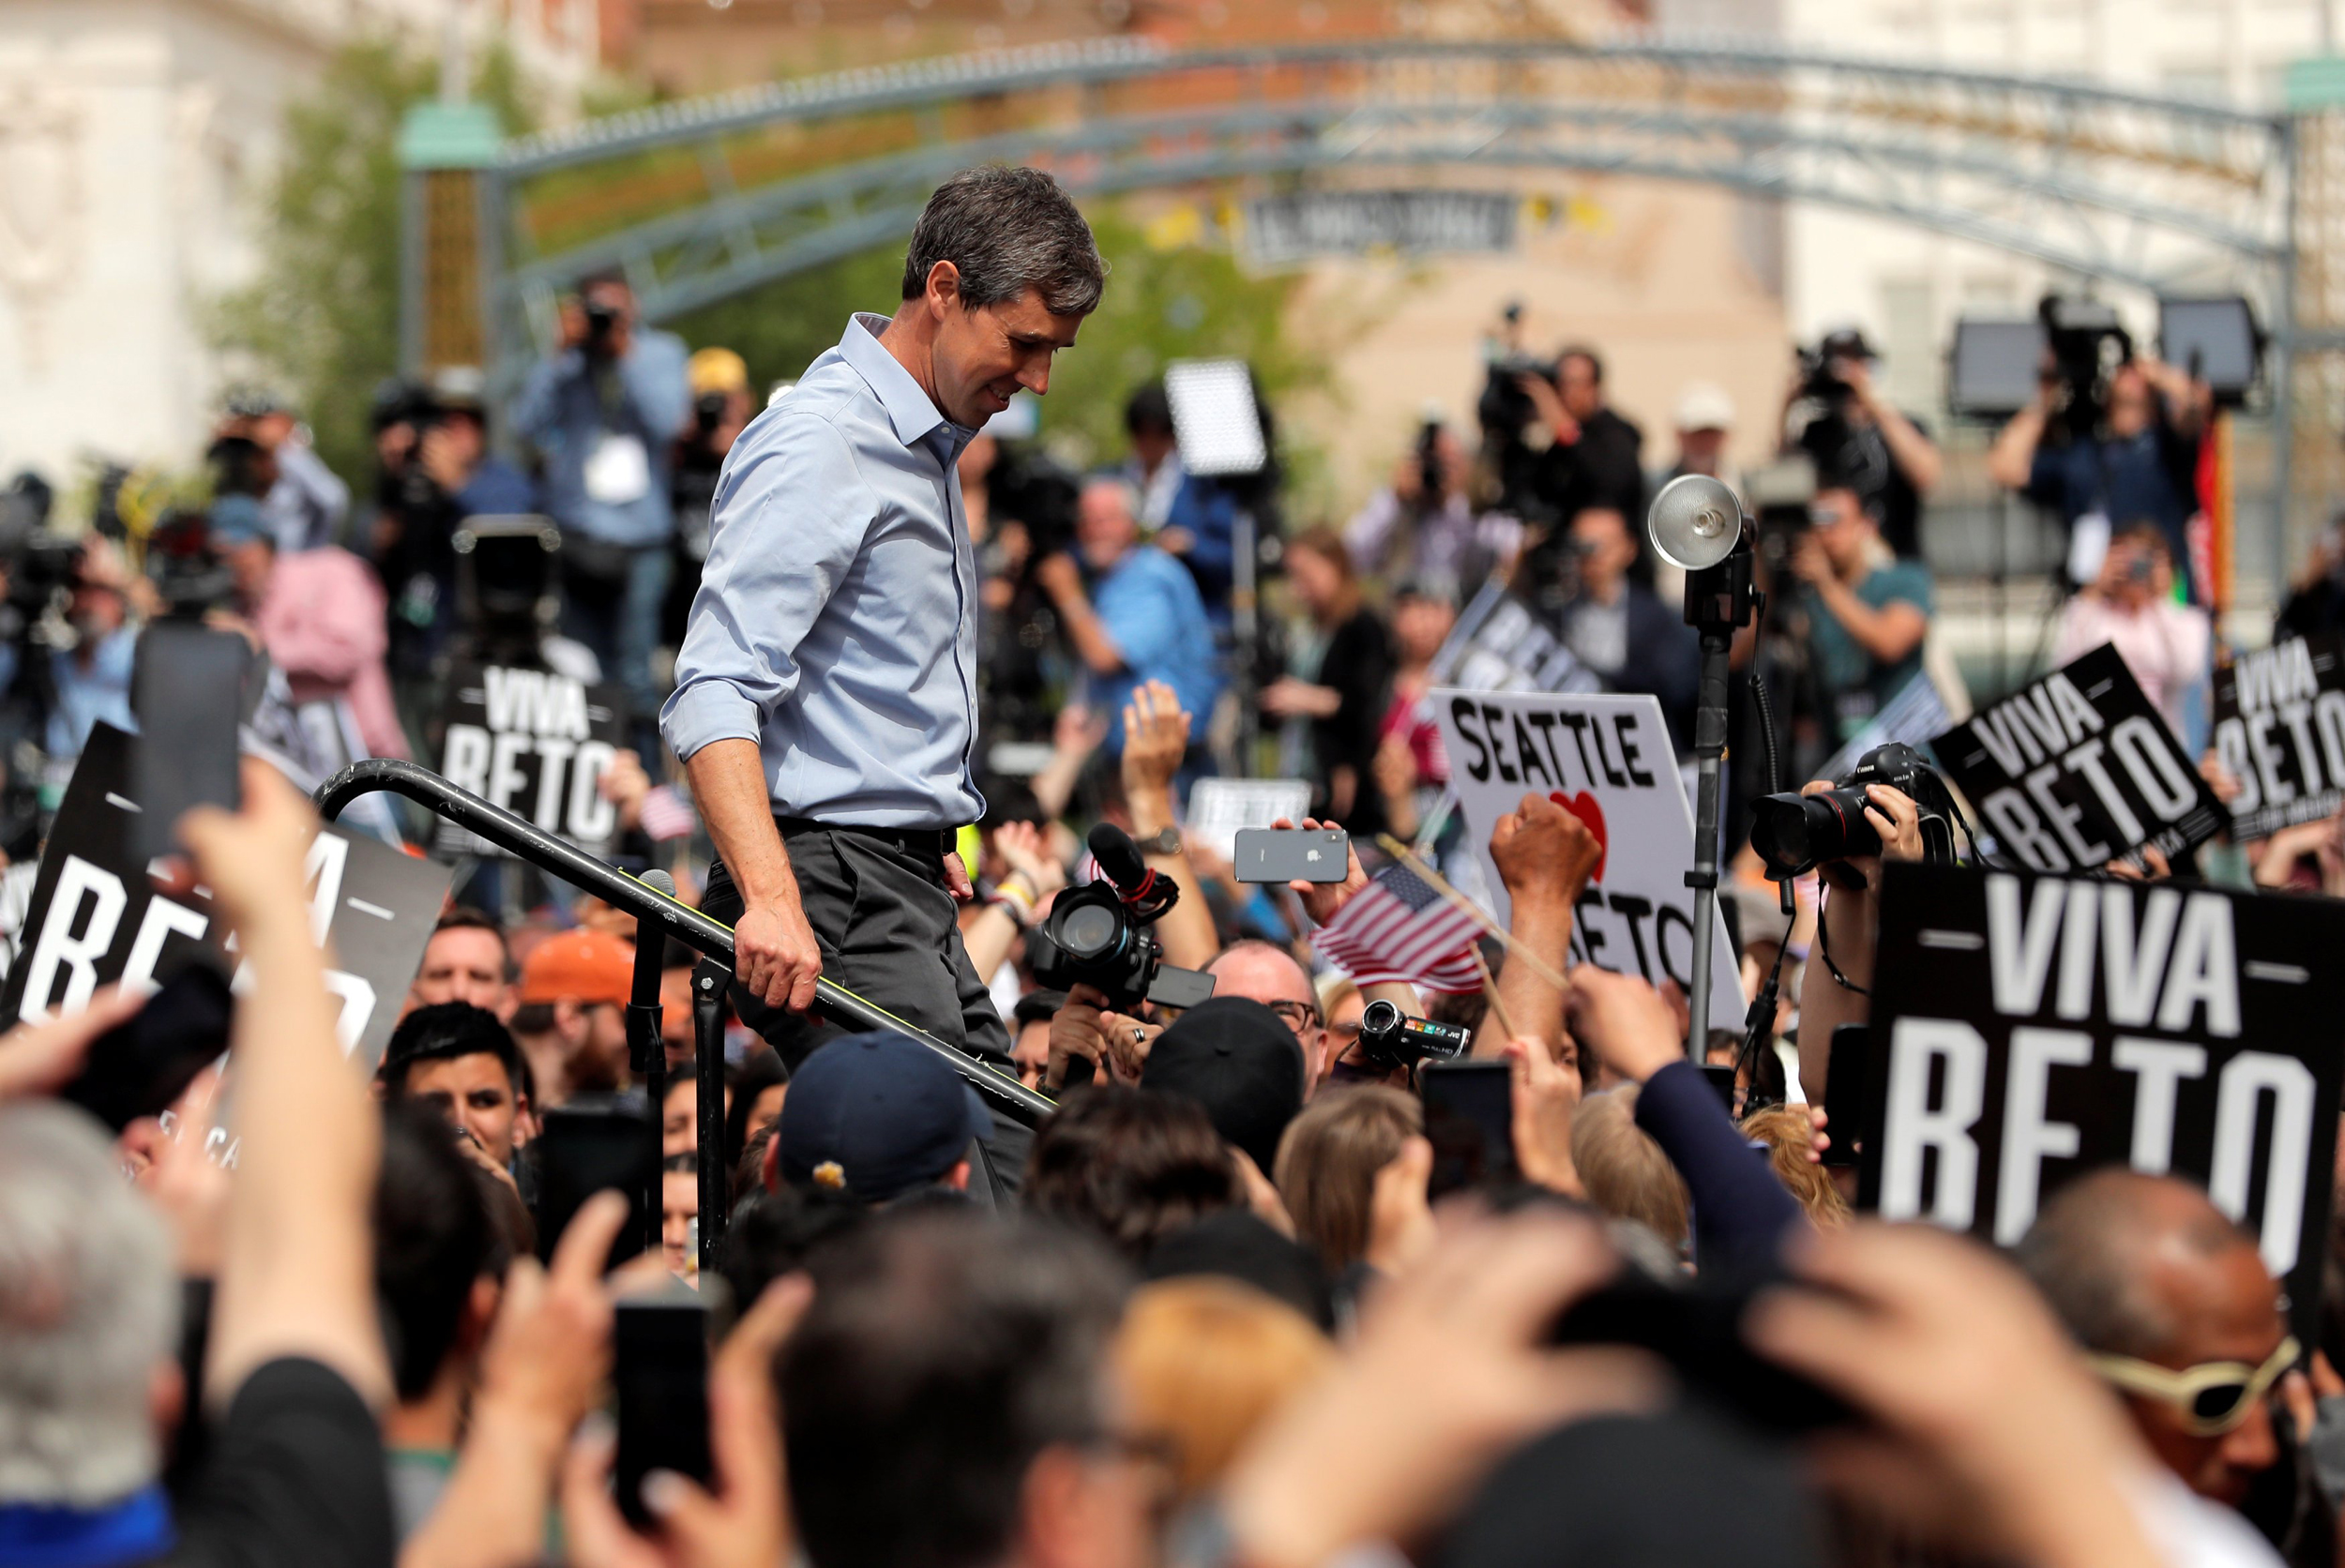 O'Rourke kicks off campaign in hometown, promises largest grassroots campaign